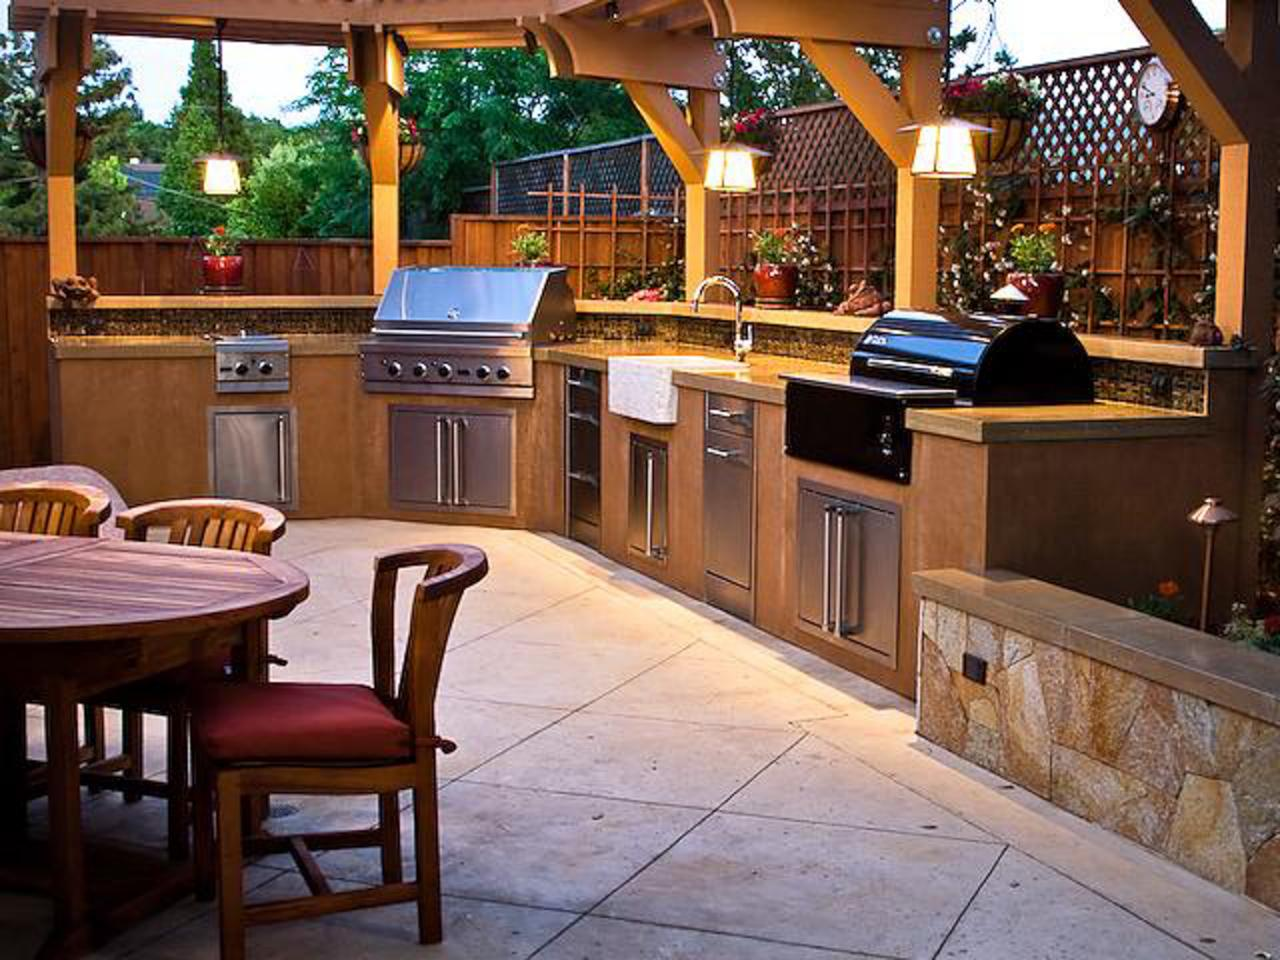 rms_outdoor_kitchen-Trish-Danby_s4x3